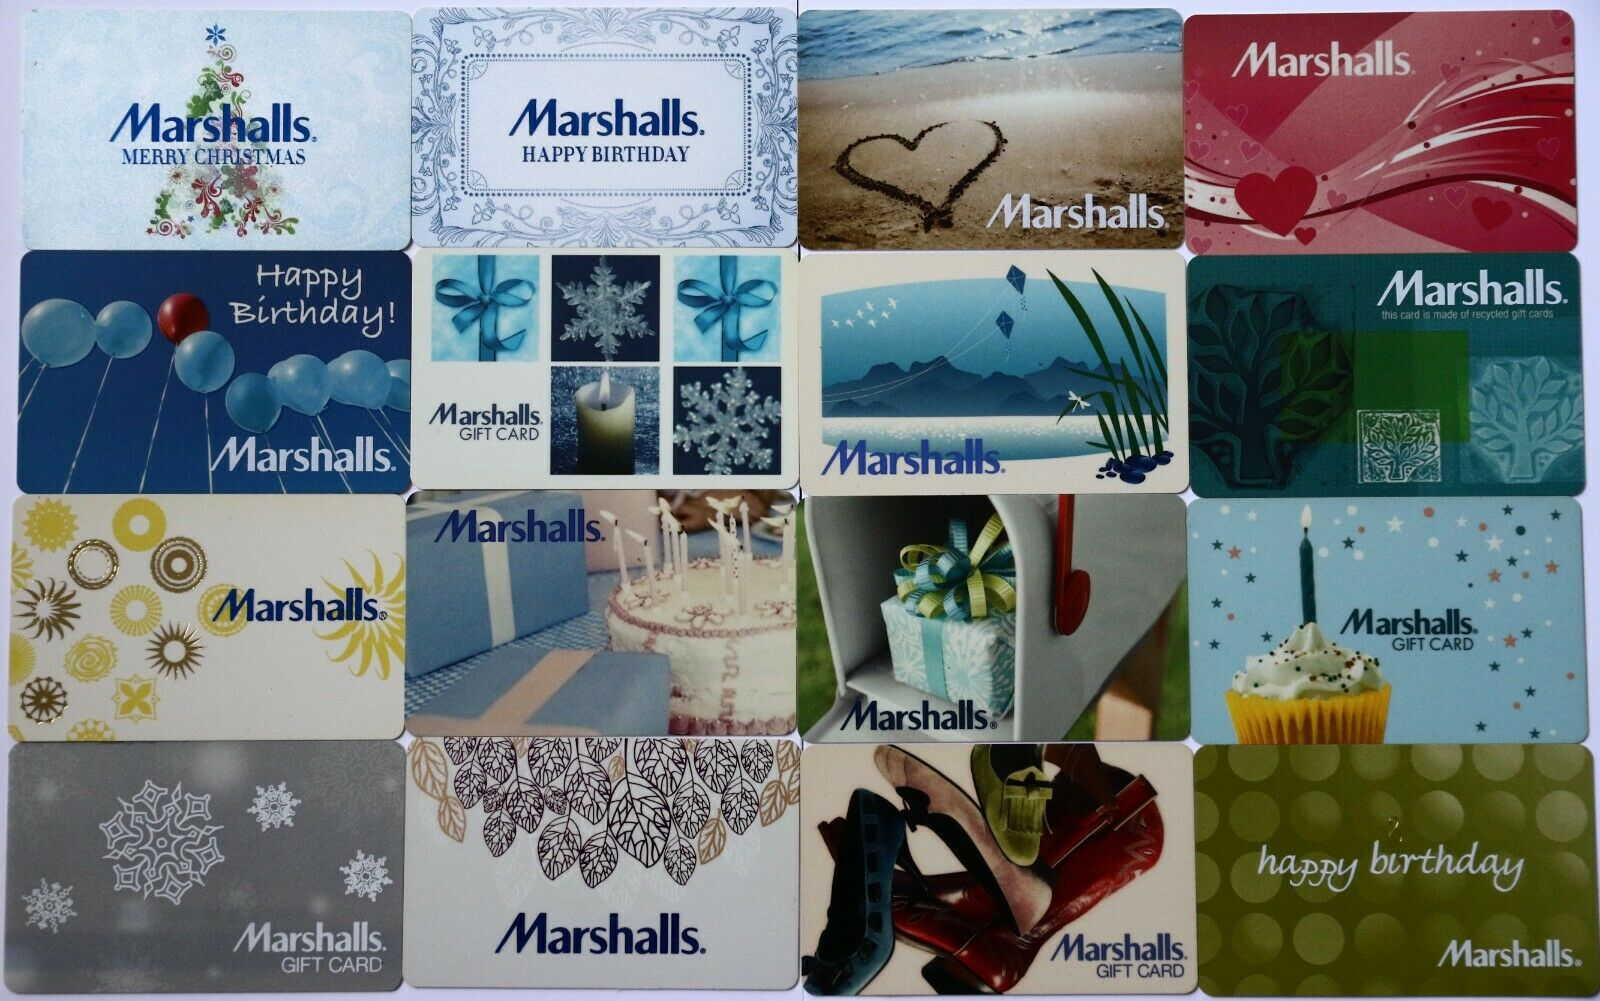 16 Marshalls Vintage Empty Gift Card Lot - $9.95